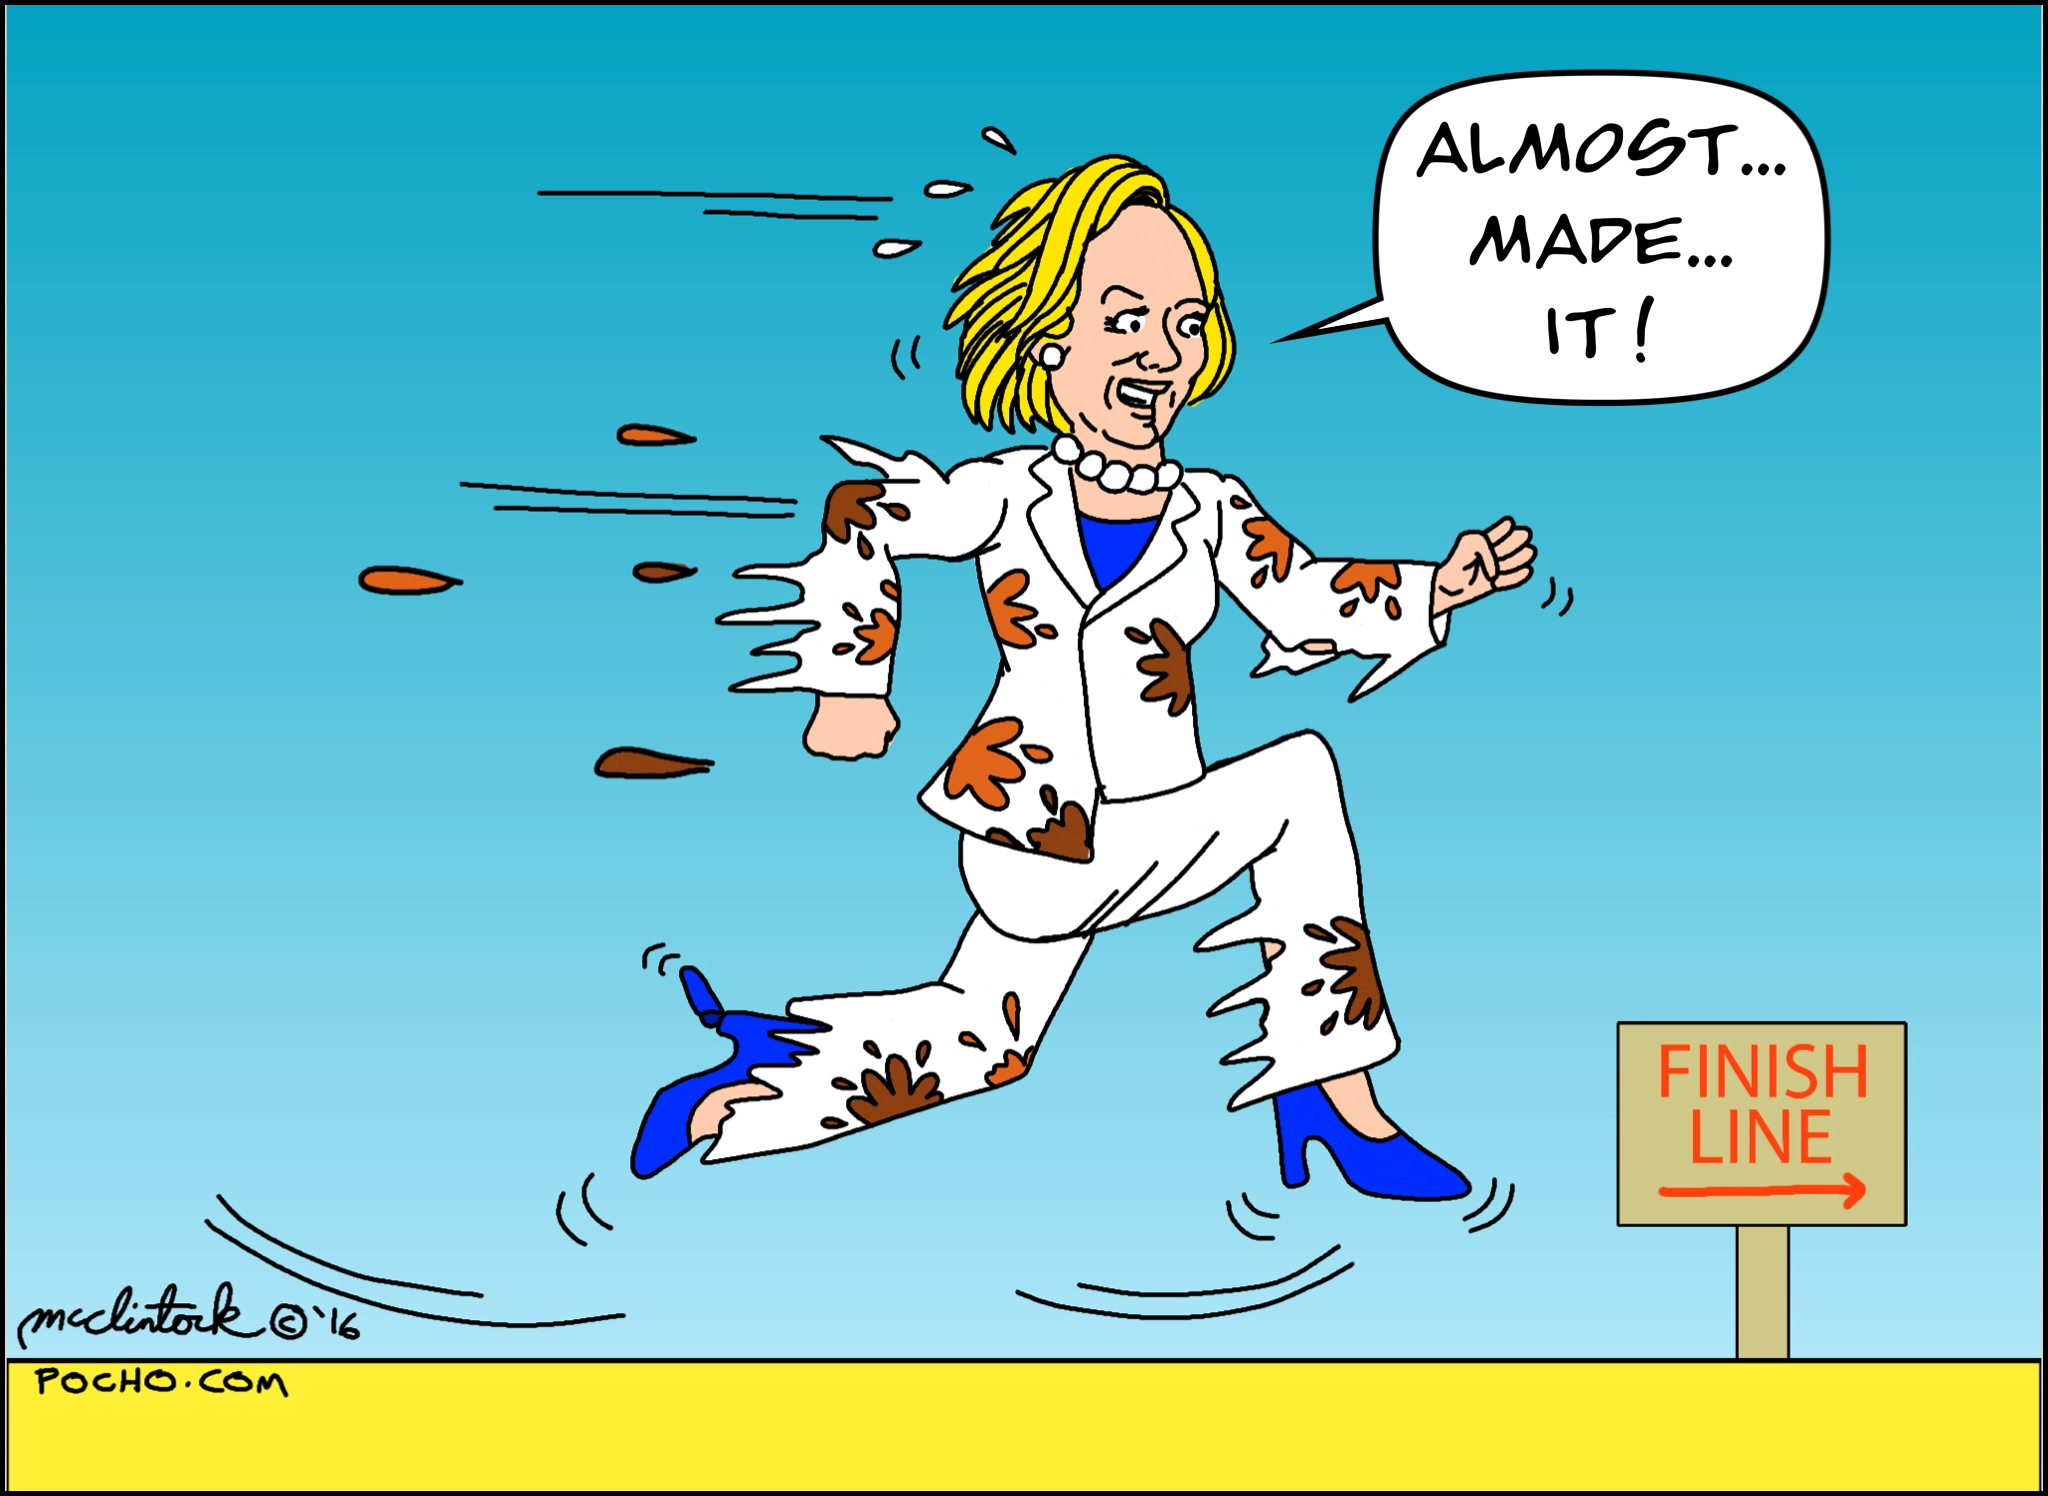 hillaryfinishline